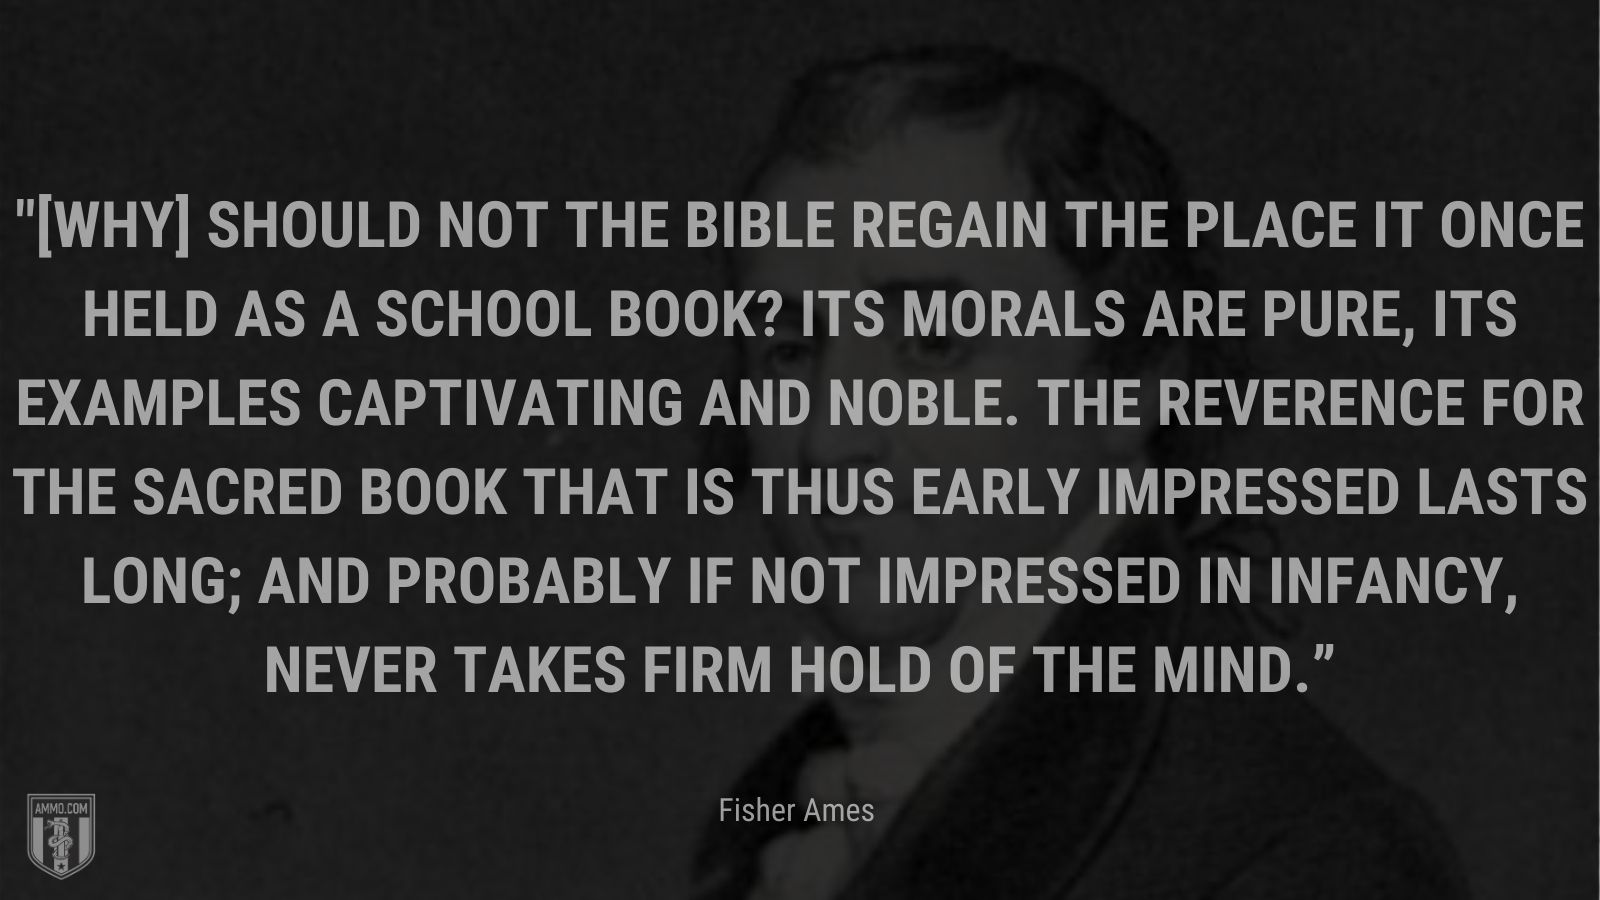 """""""[Why] should not the Bible regain the place it once held as a school book? Its morals are pure, its examples captivating and noble. The reverence for the Sacred Book that is thus early impressed lasts long; and probably if not impressed in infancy, never takes firm hold of the mind."""" - Fisher Ames"""